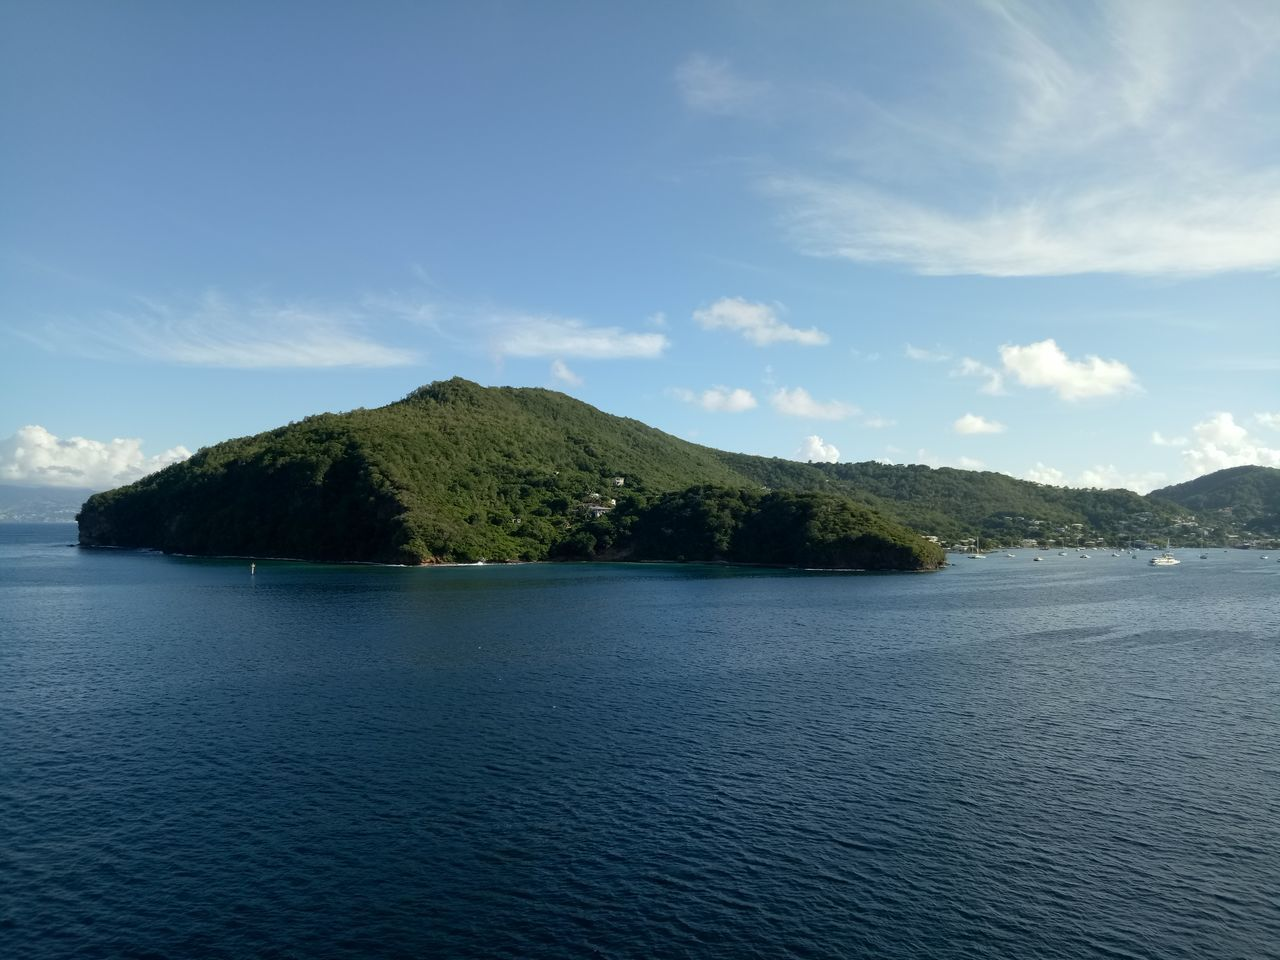 Bequia Water Tree Scenics Blue Landscape Lake Rippled Social Issues Sky Tranquil Scene Nature No People Cloud - Sky Beauty In Nature Day Outdoors Mountain travel destinations